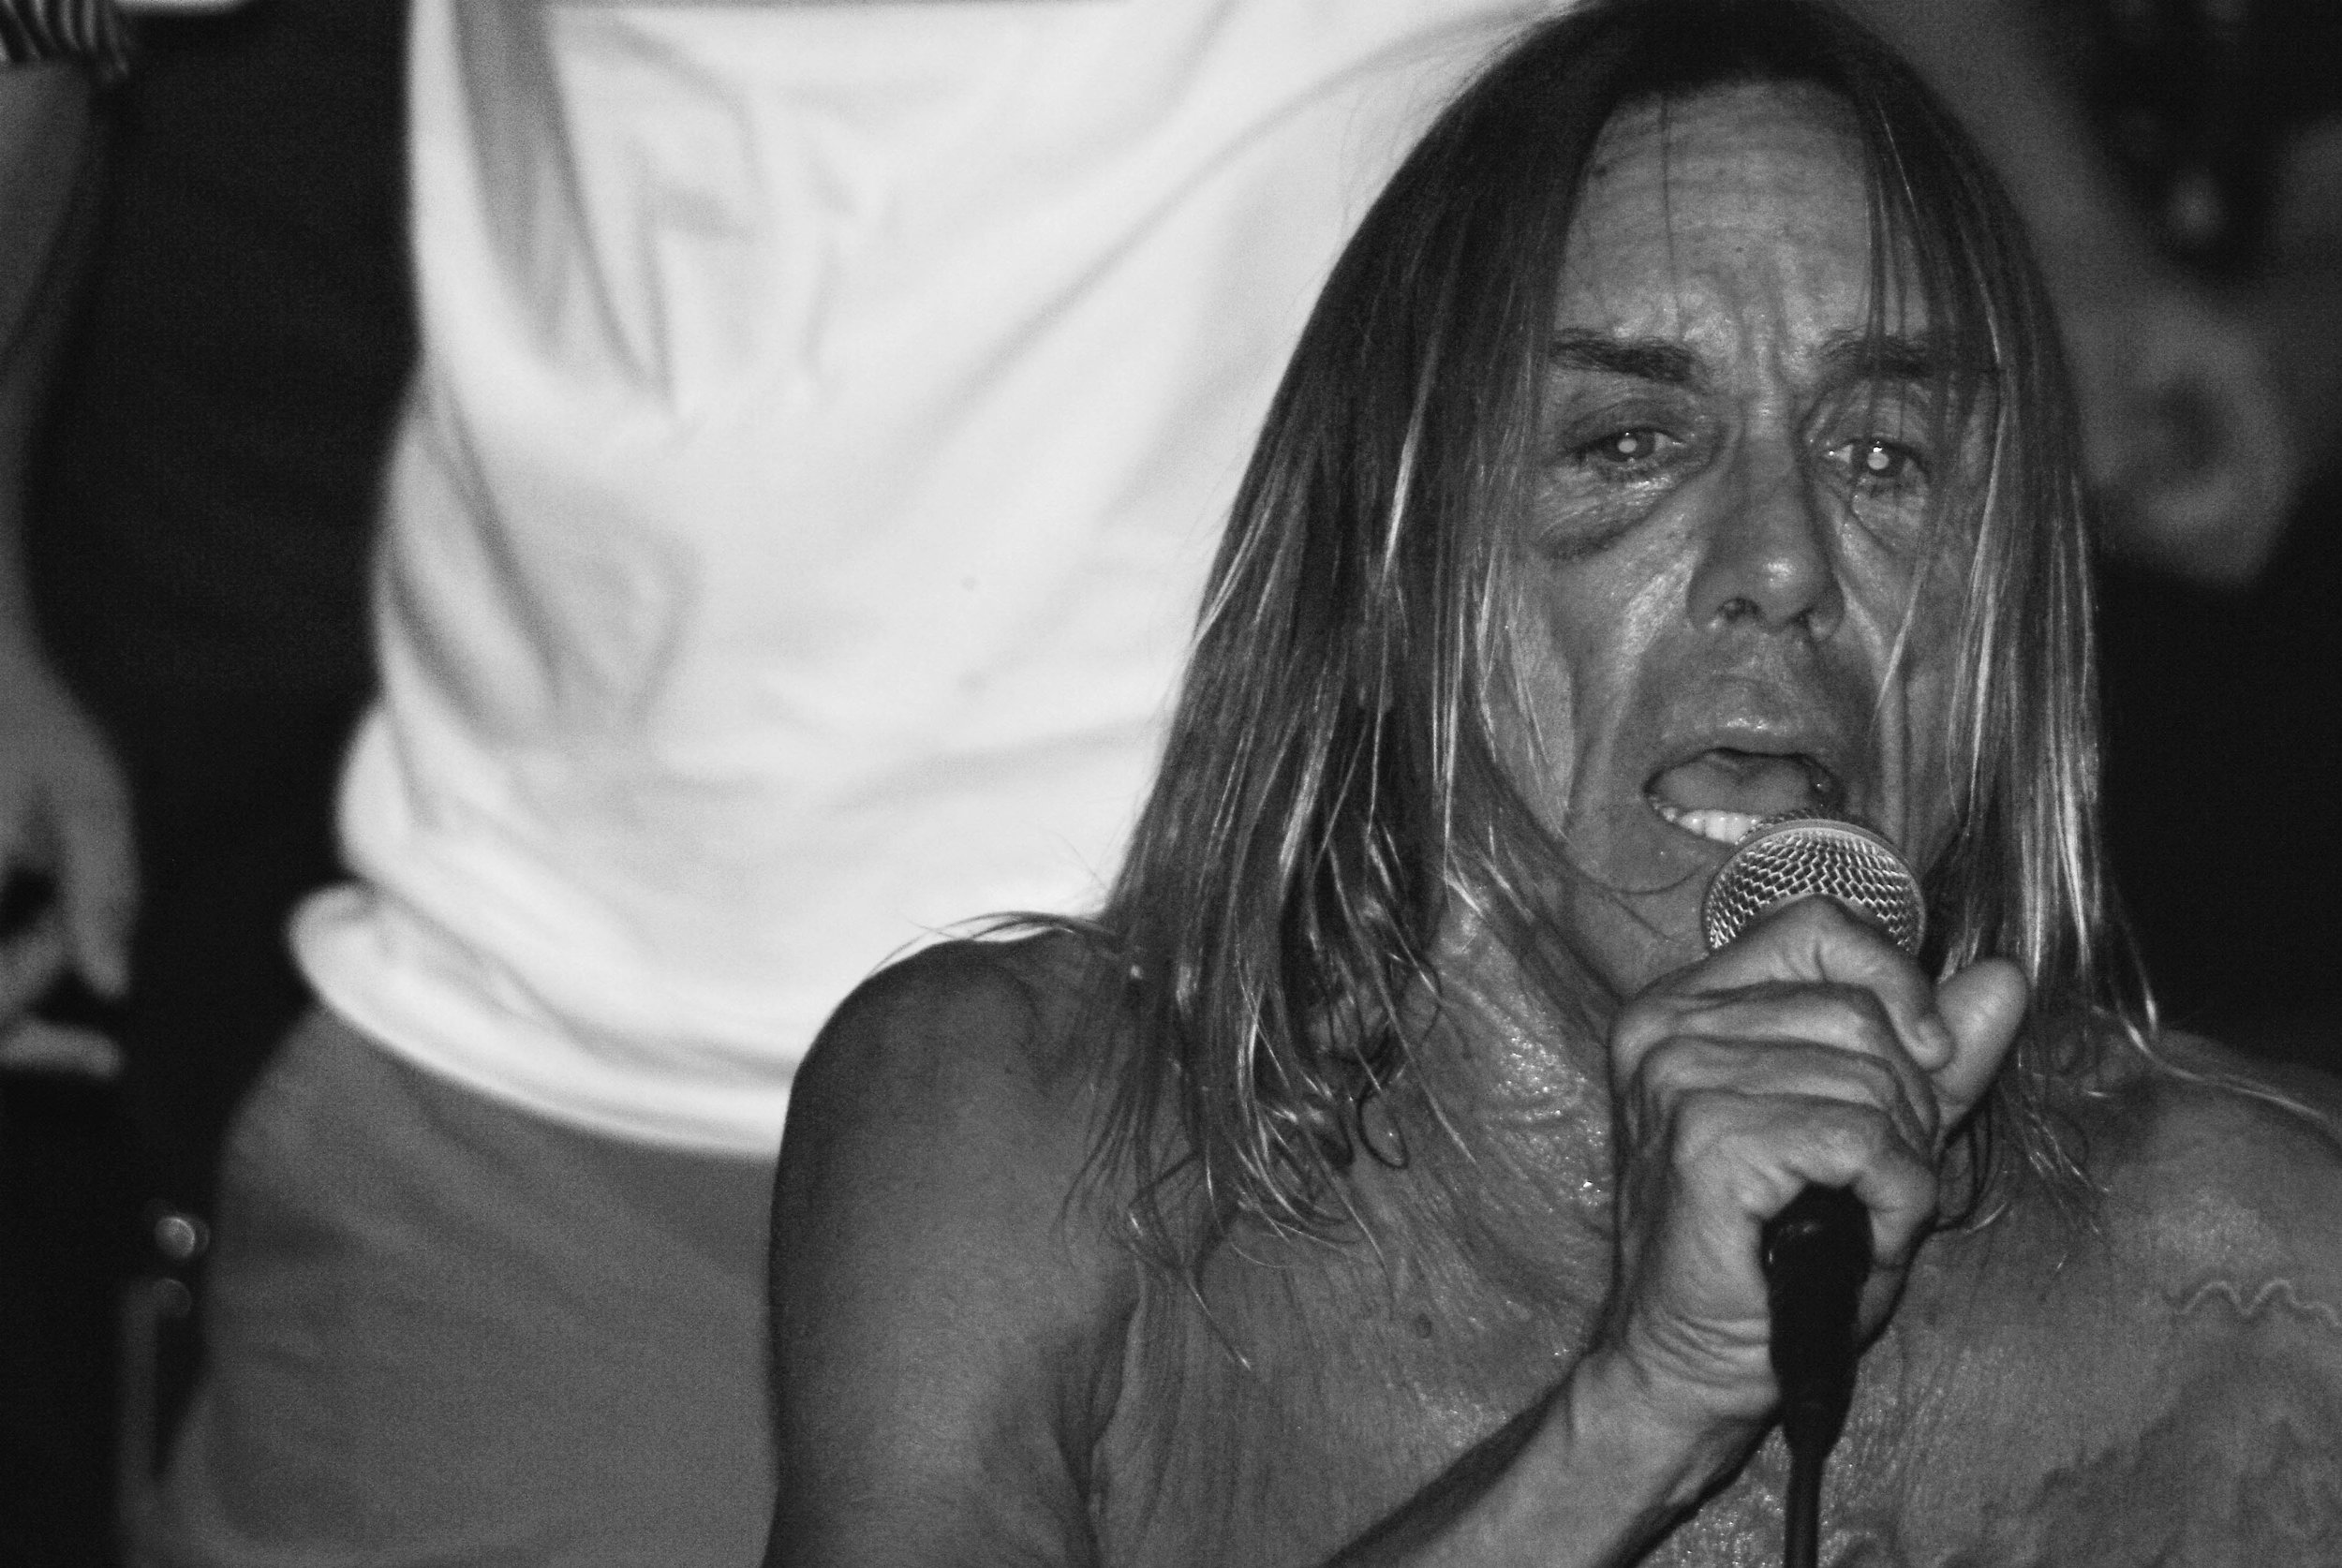 Iggy Pop & The Stooges | Marseille, France 2011